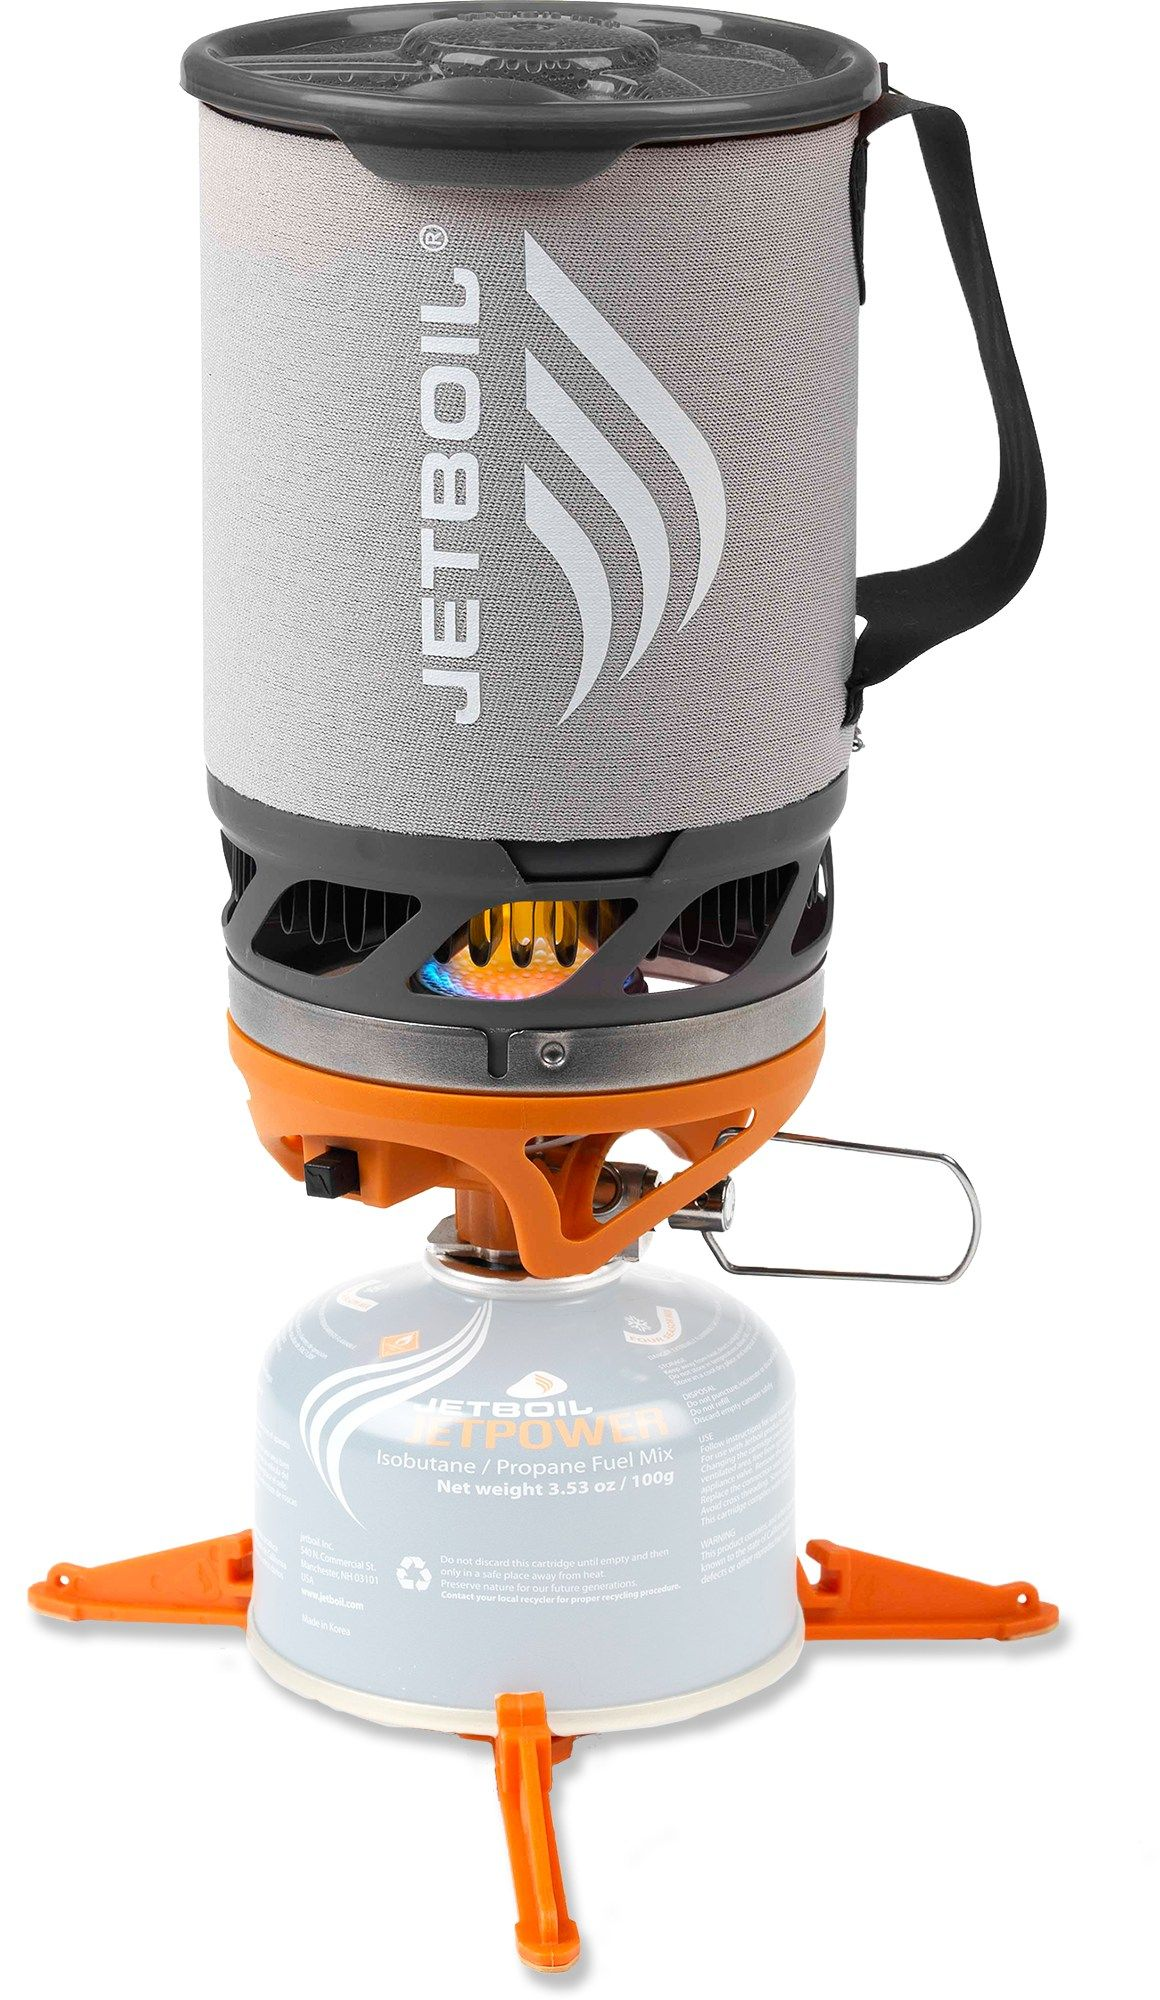 Jetboil Sol Titanium Stove - A friend had one of these while we were camping. They are great. Perfect for heating water. On my wish list.